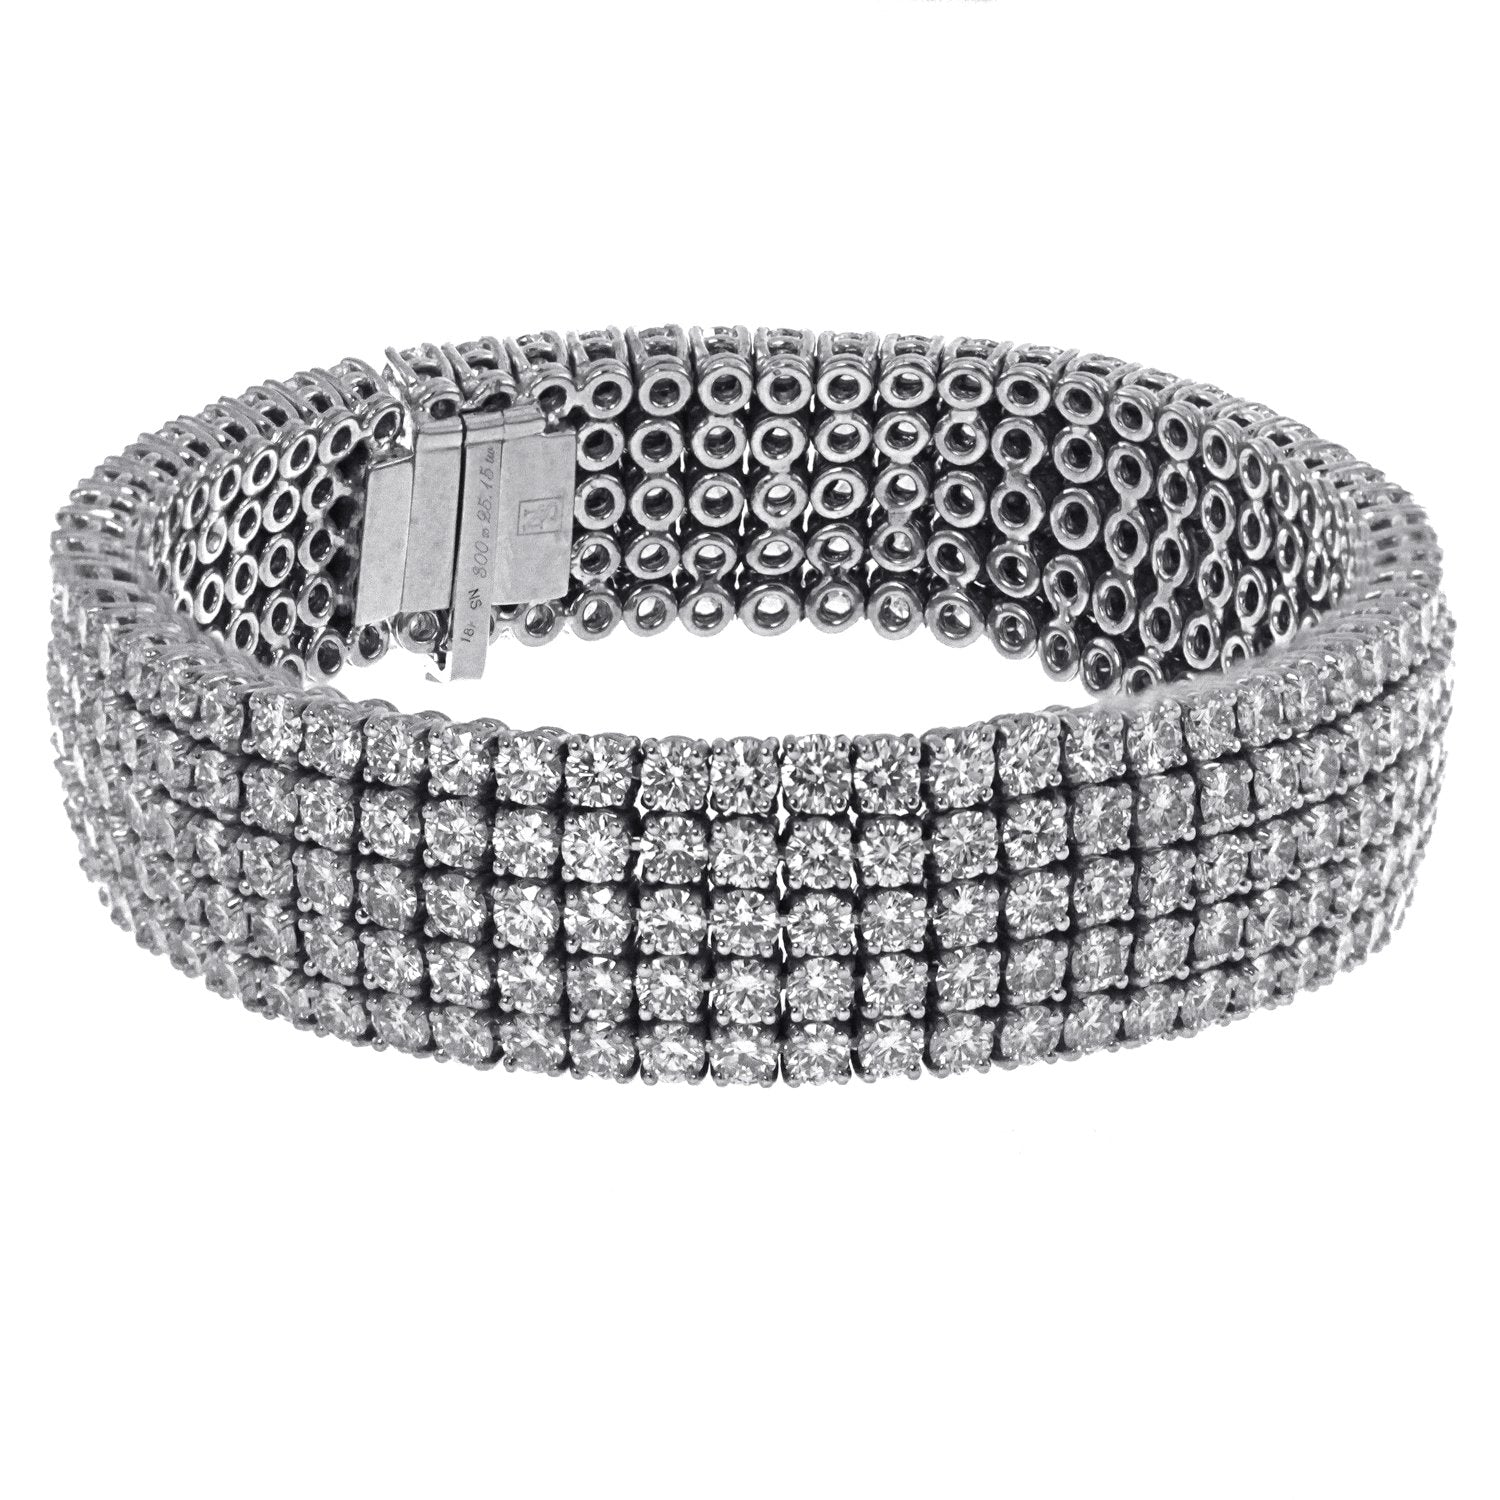 18K White Gold Diamond Bracelet with Five Rows And A Total Of 25.15 CT Diamonds